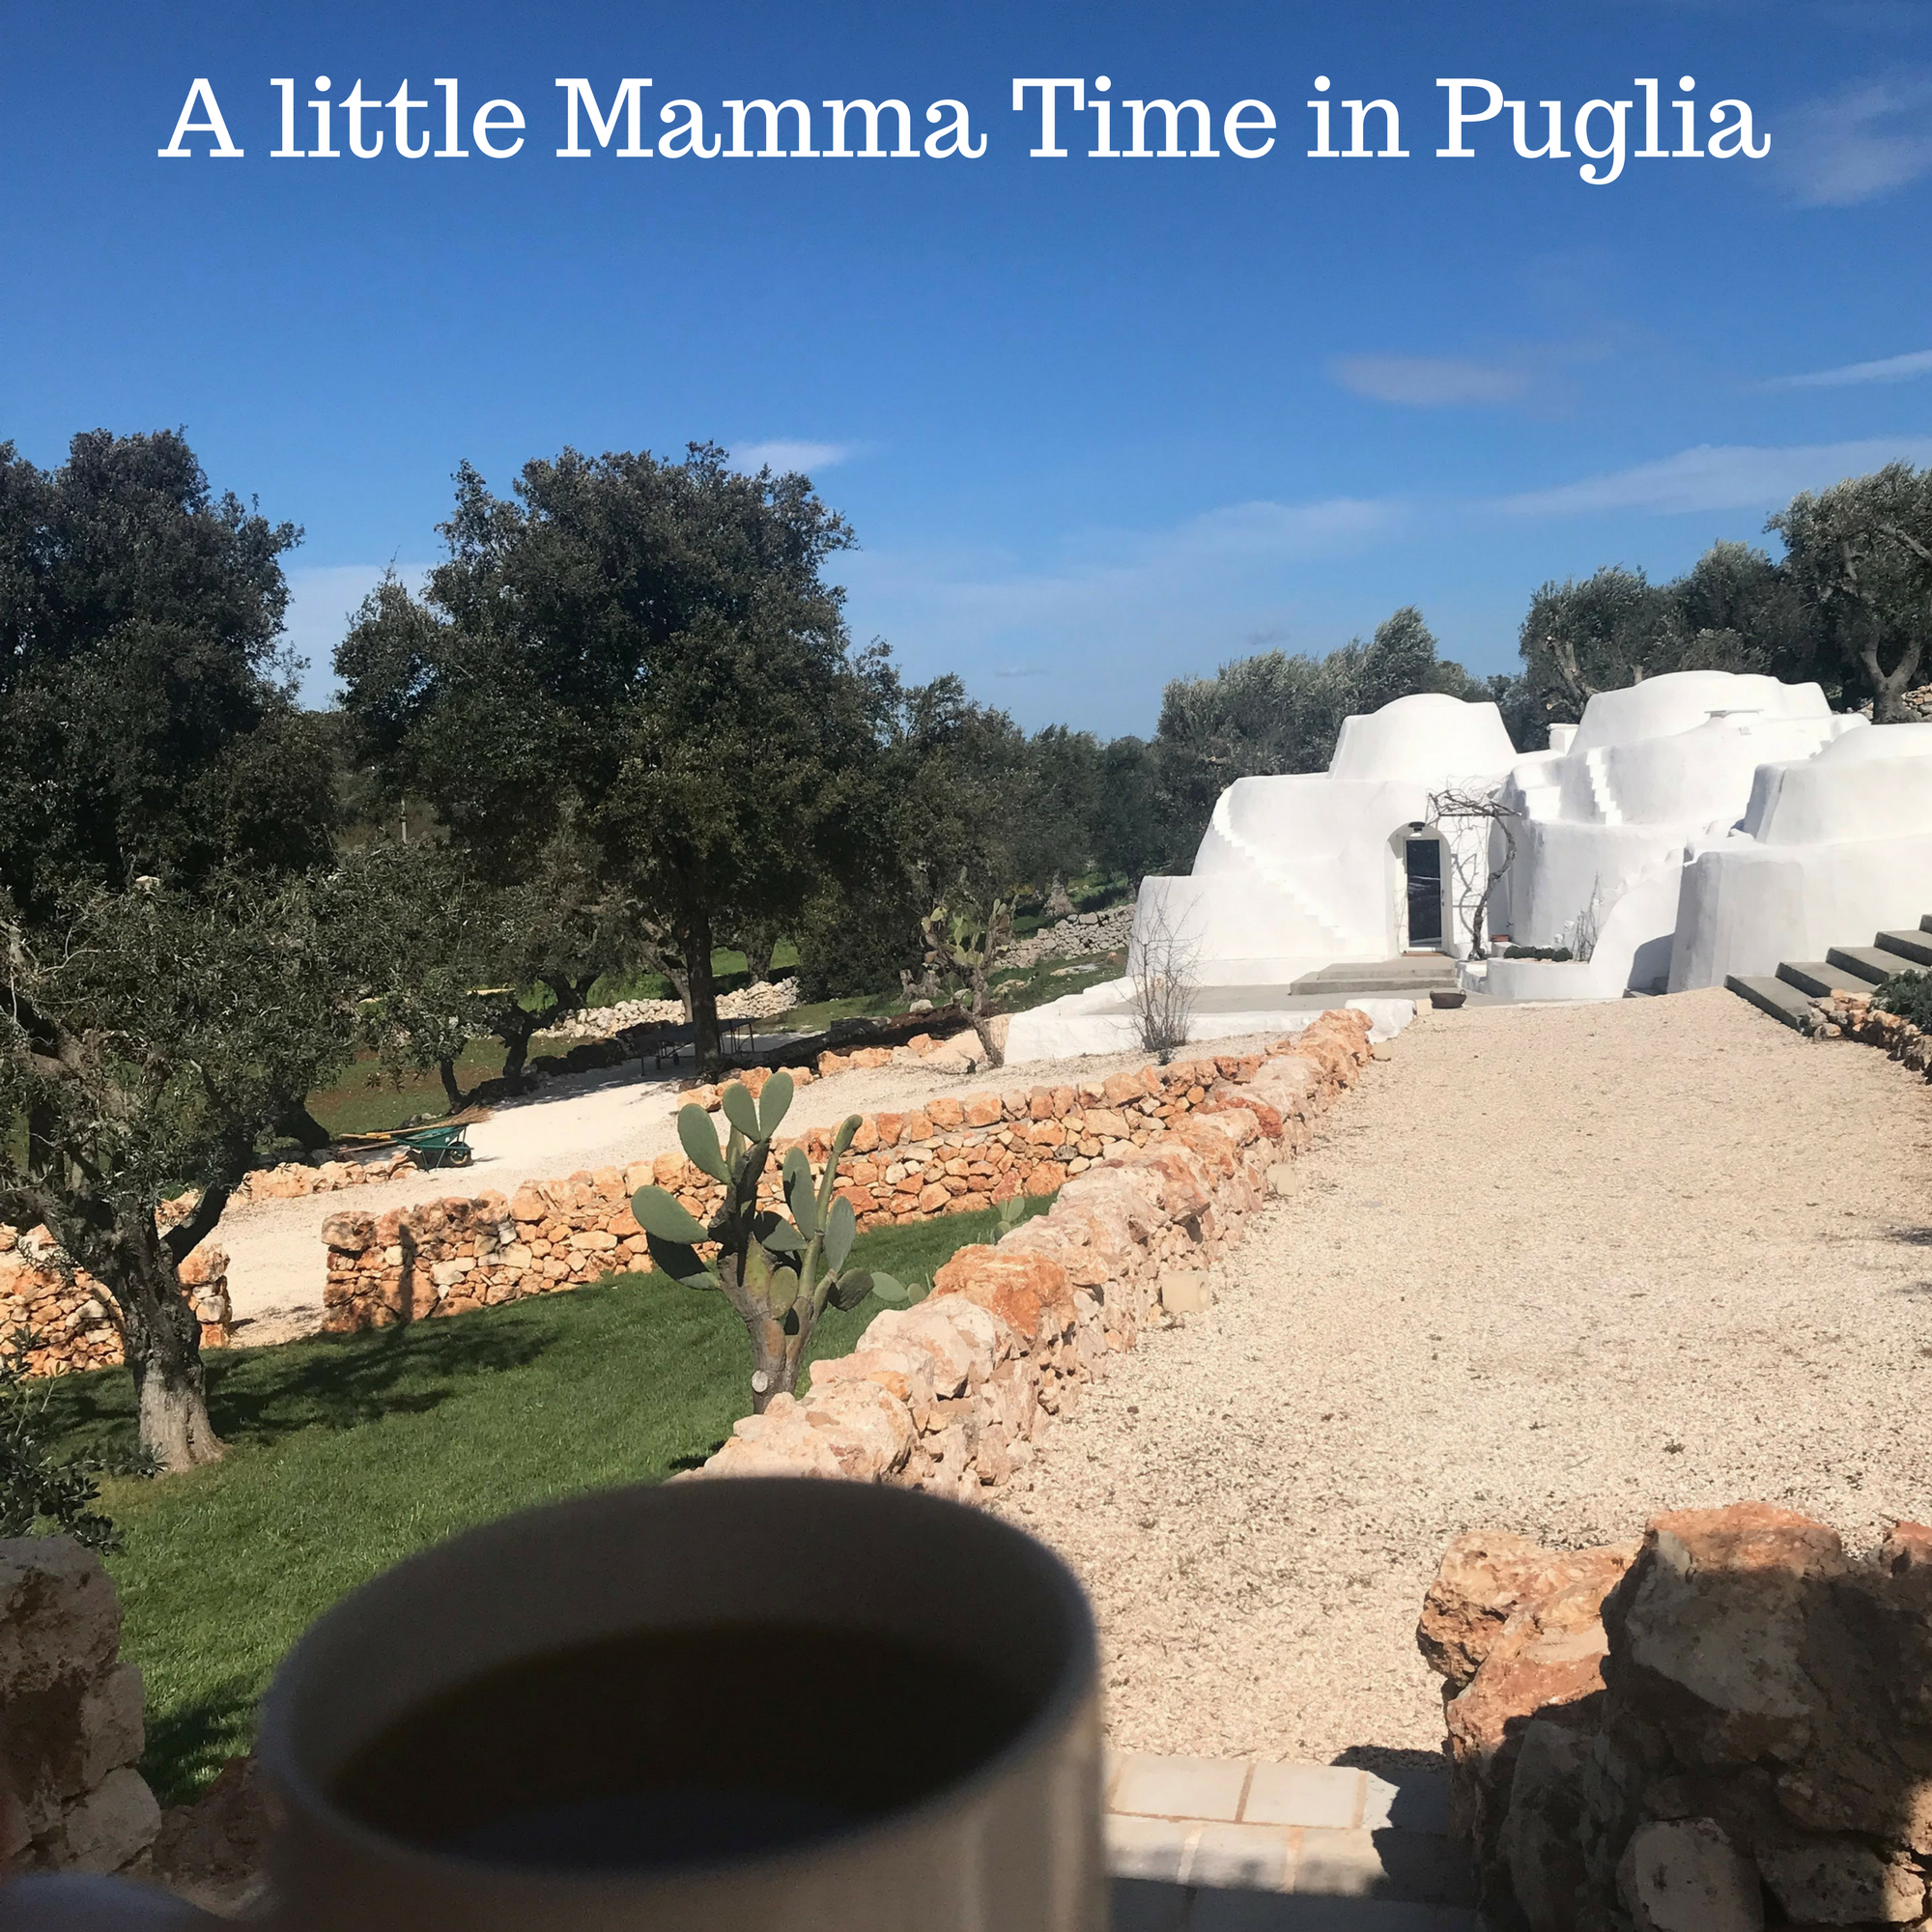 A little Mamma Time in Puglia